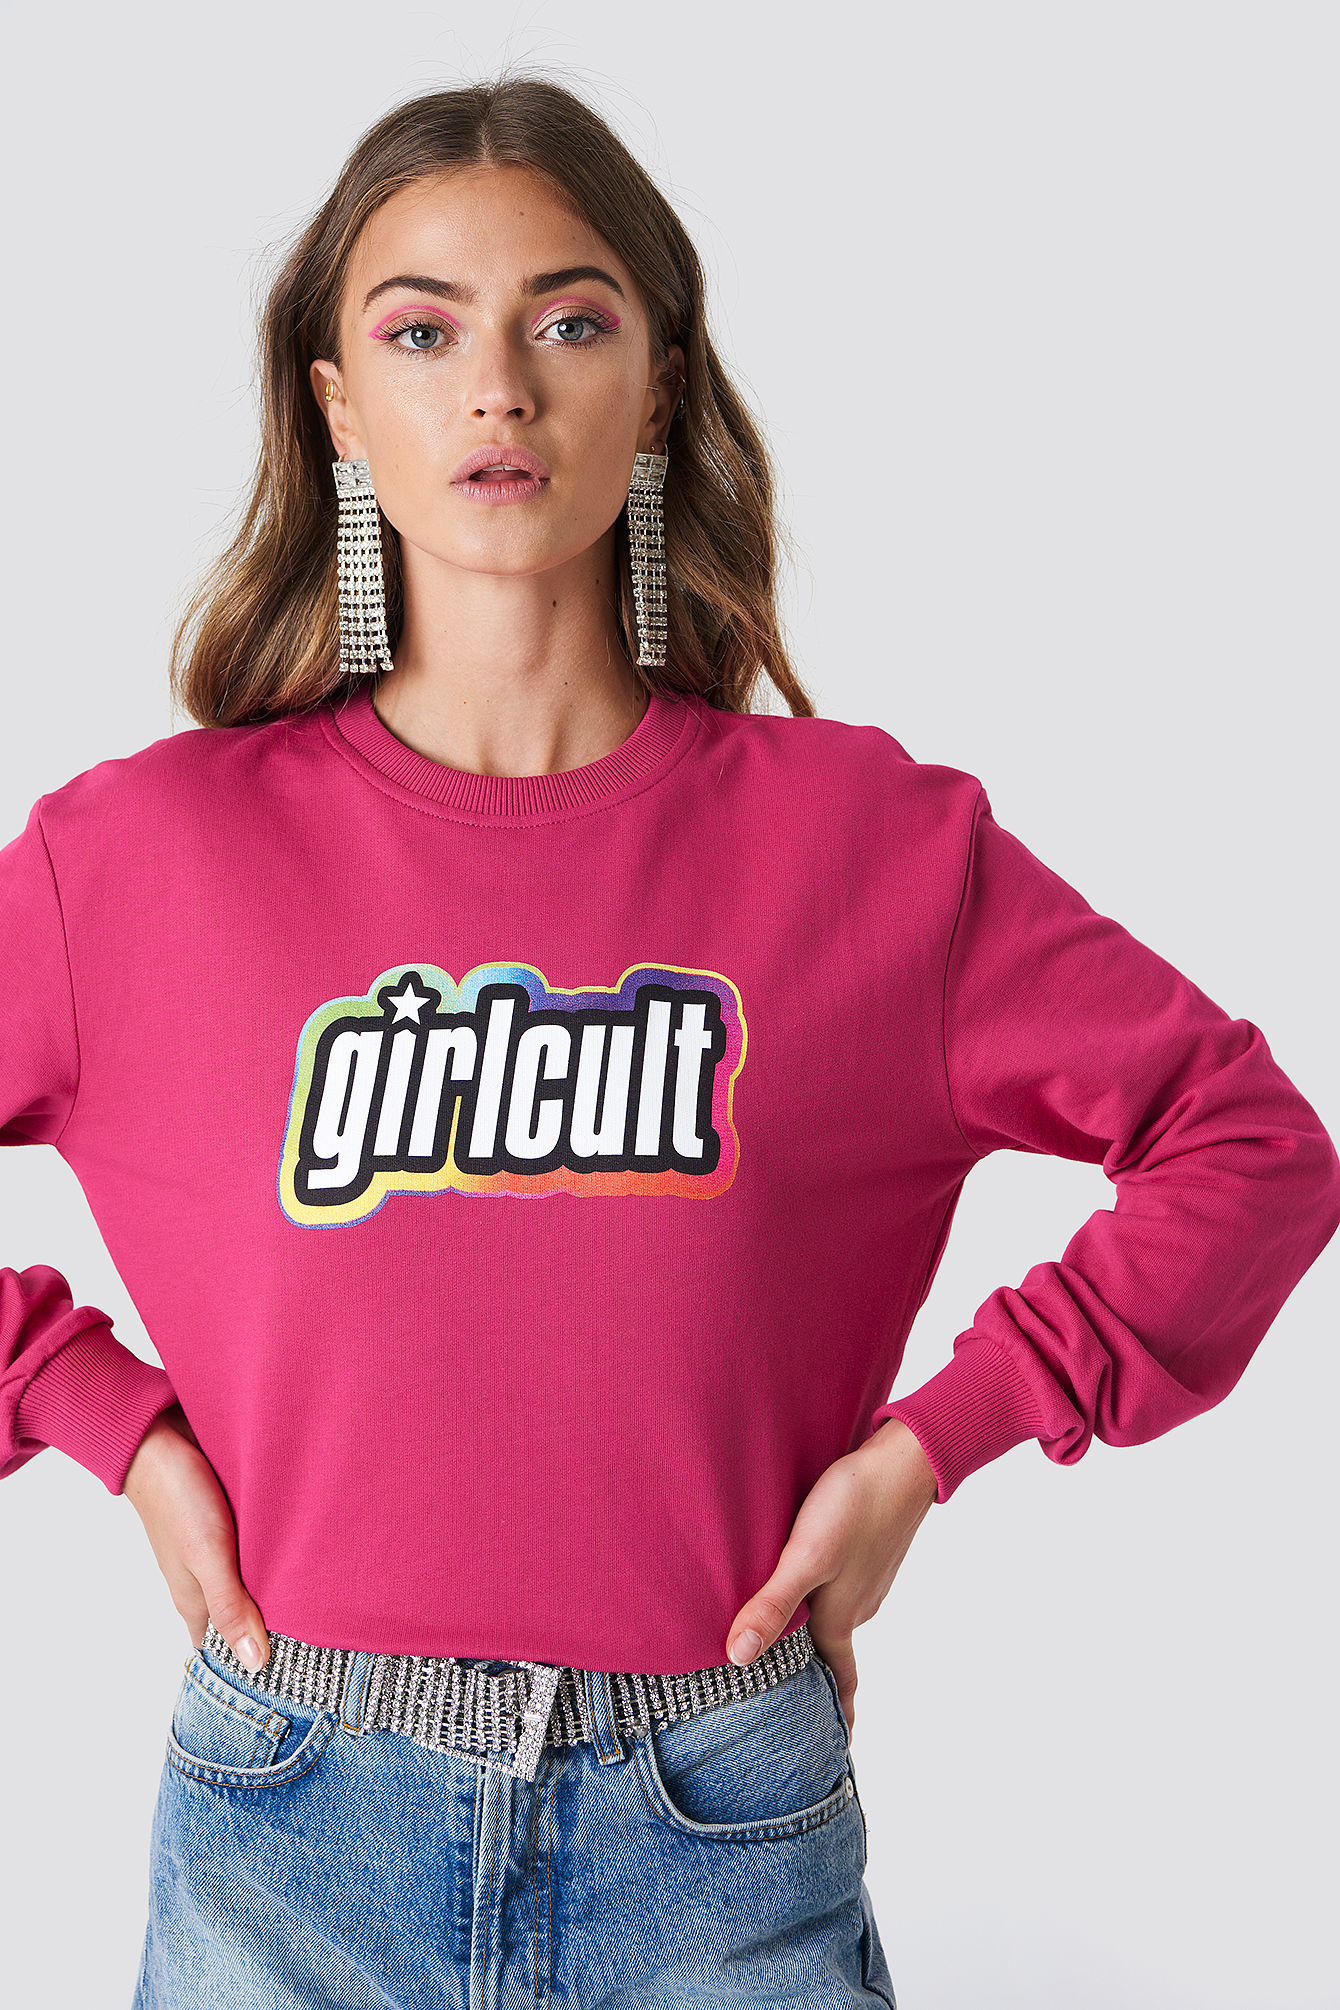 Girl Cult Sweatshirt NA-KD.COM